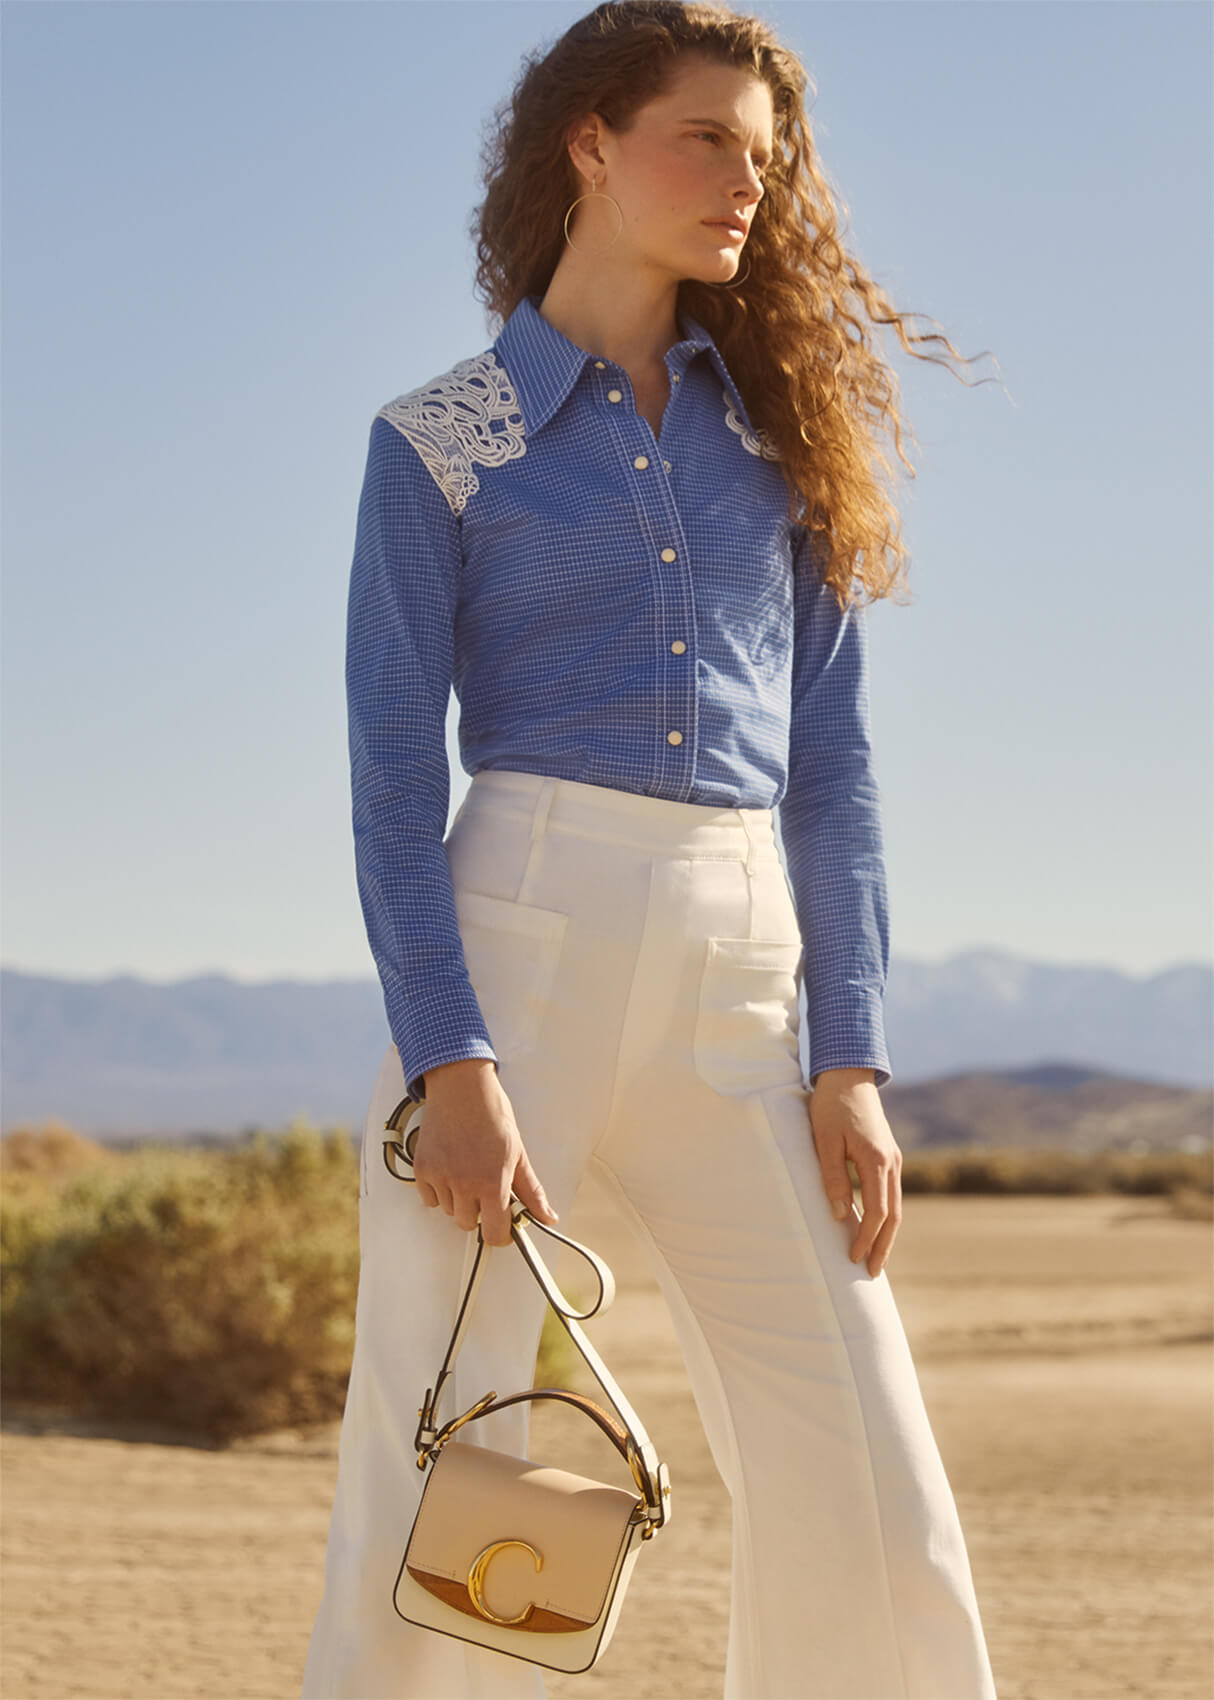 chloe lace-shoulder western shirt and goop x chloe c shoulder bag